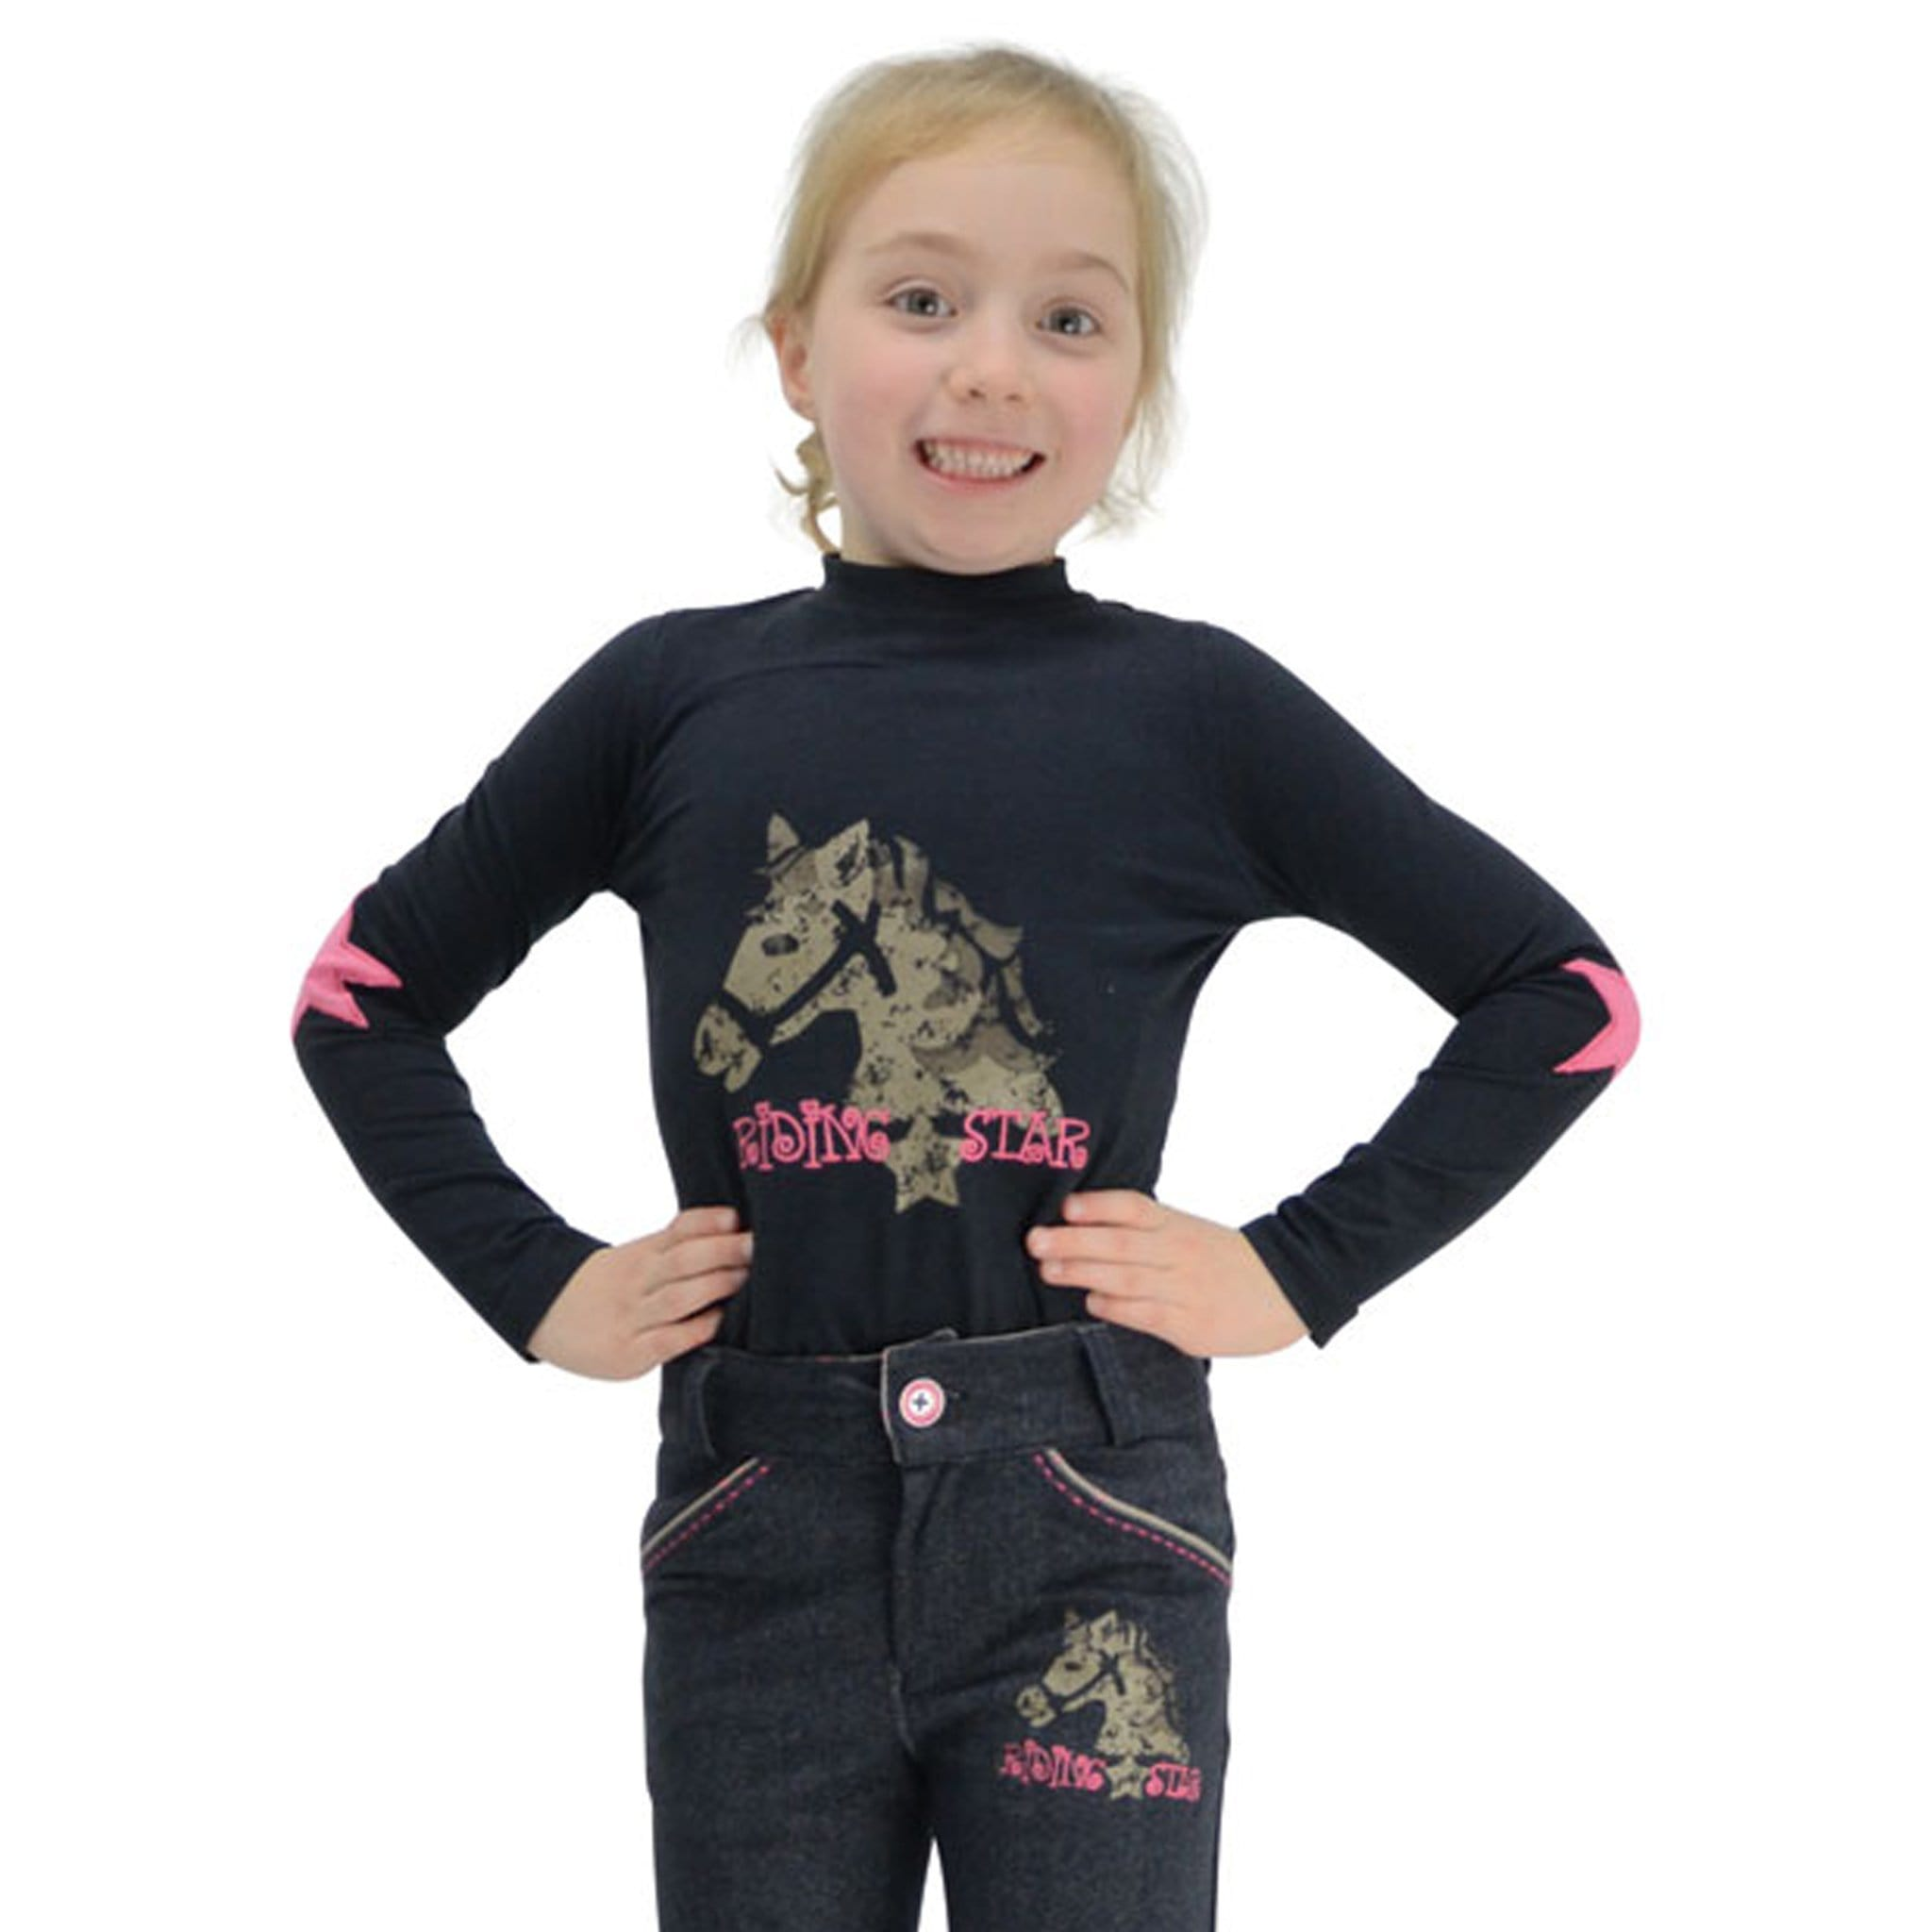 Hy Little Rider Riding Star Long Sleeved Top Front View 14165.